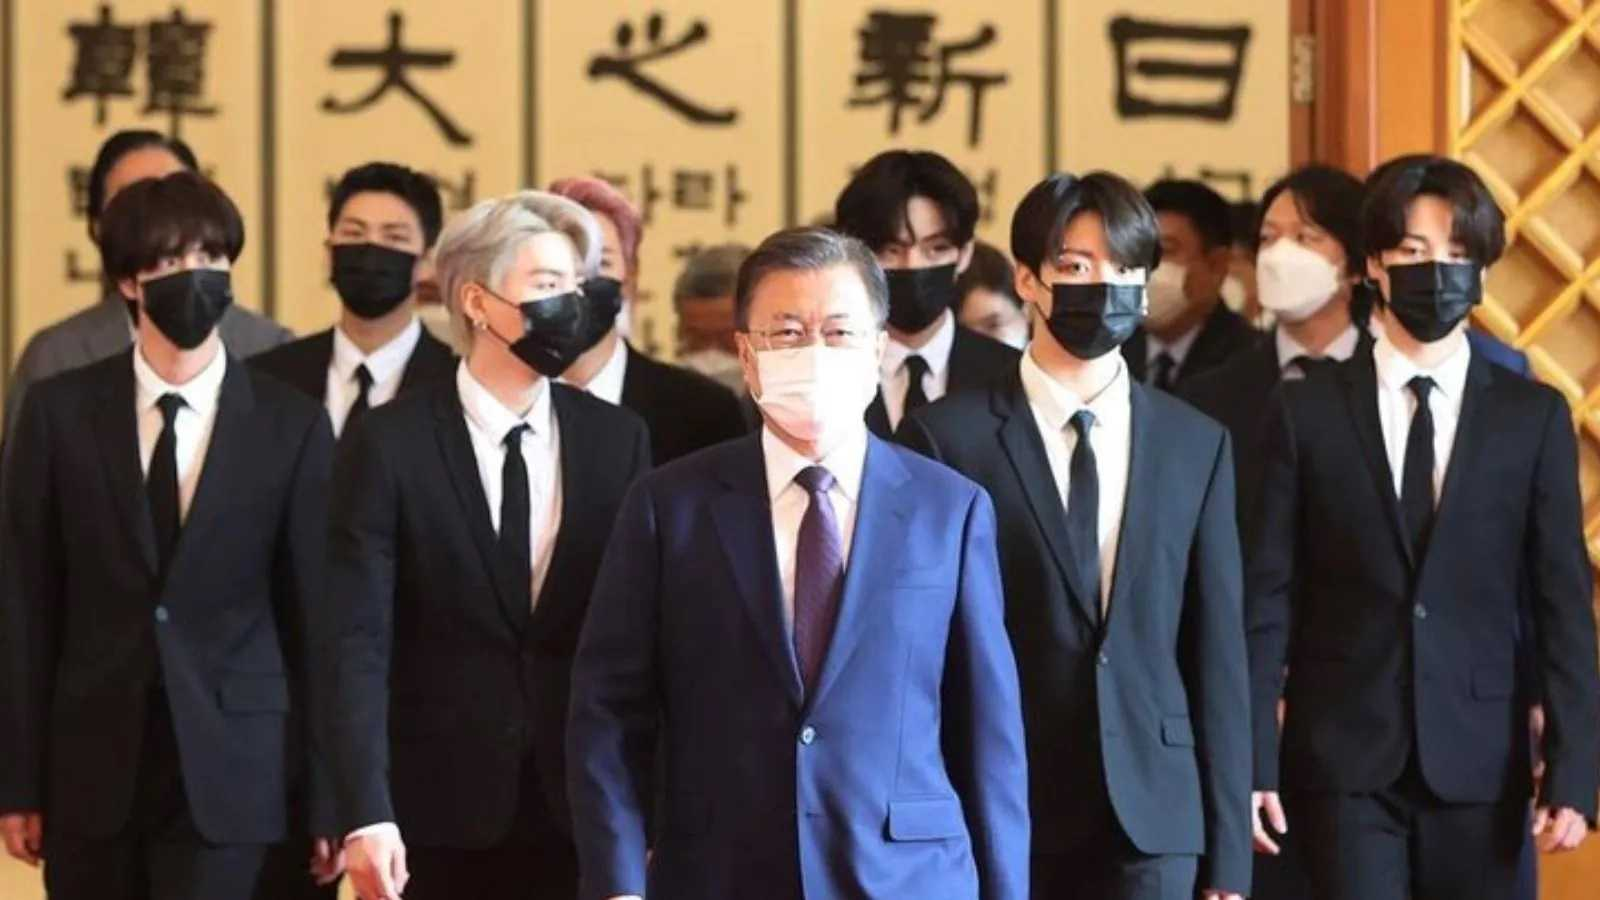 """All the president's men: Last month, South Korea's President Moon Jae-in appointed the BTS members """"special envoys for future generations and cultures"""". They accompanied the President to the 76th United Nations General Assembly and participated in the second meeting of the Sustainable Development Goals (SDG) Moment"""